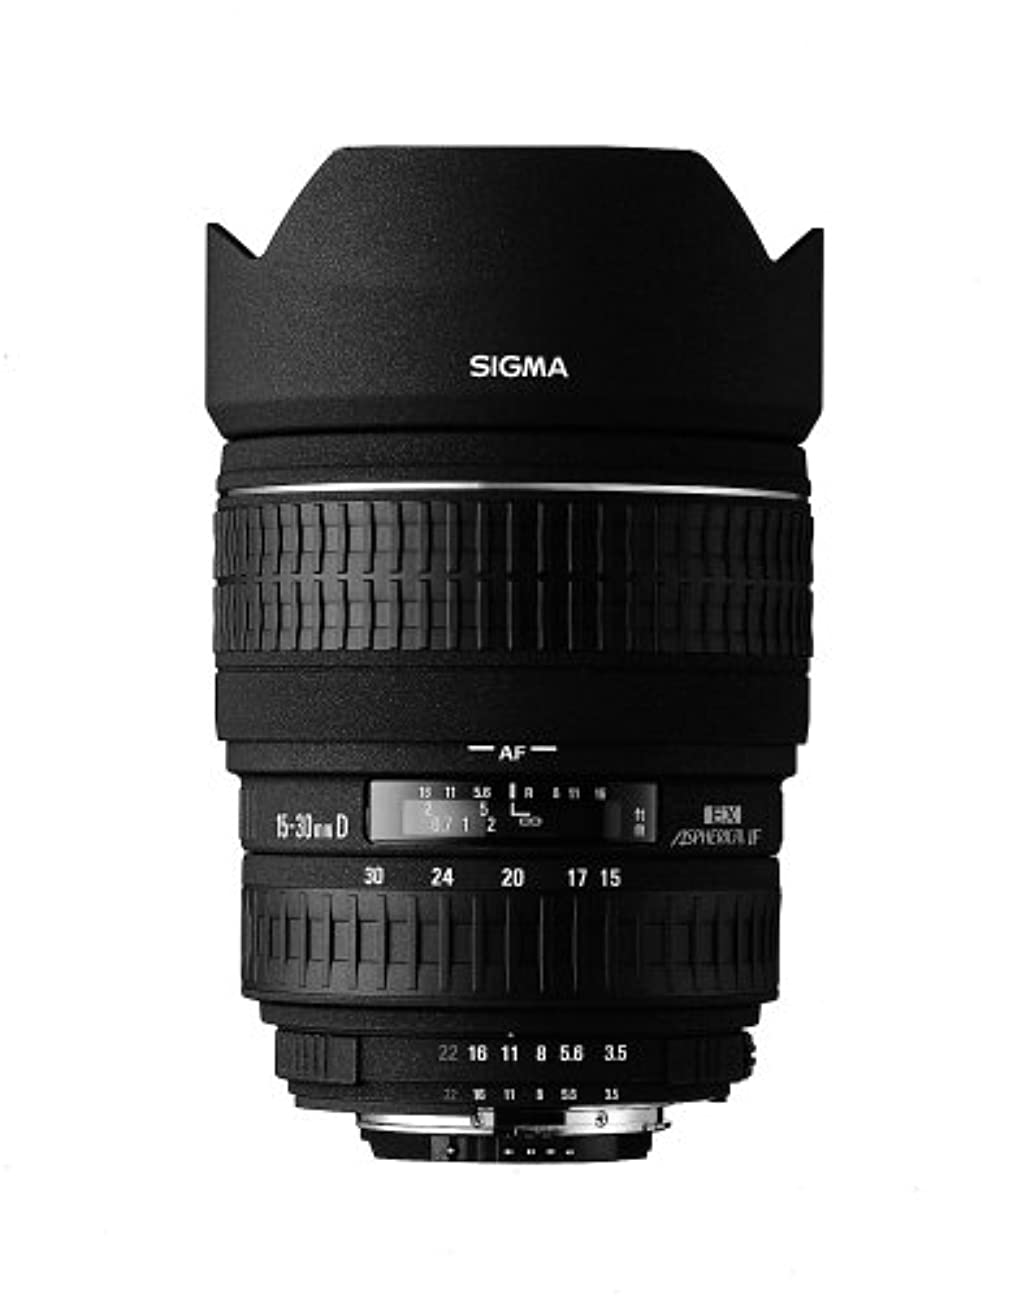 Sigma 15-30mm f/3.5-4.5 EX DG IF Aspherical Ultra Wide Angle Zoom Lens for Minolta and Sony SLR Cameras